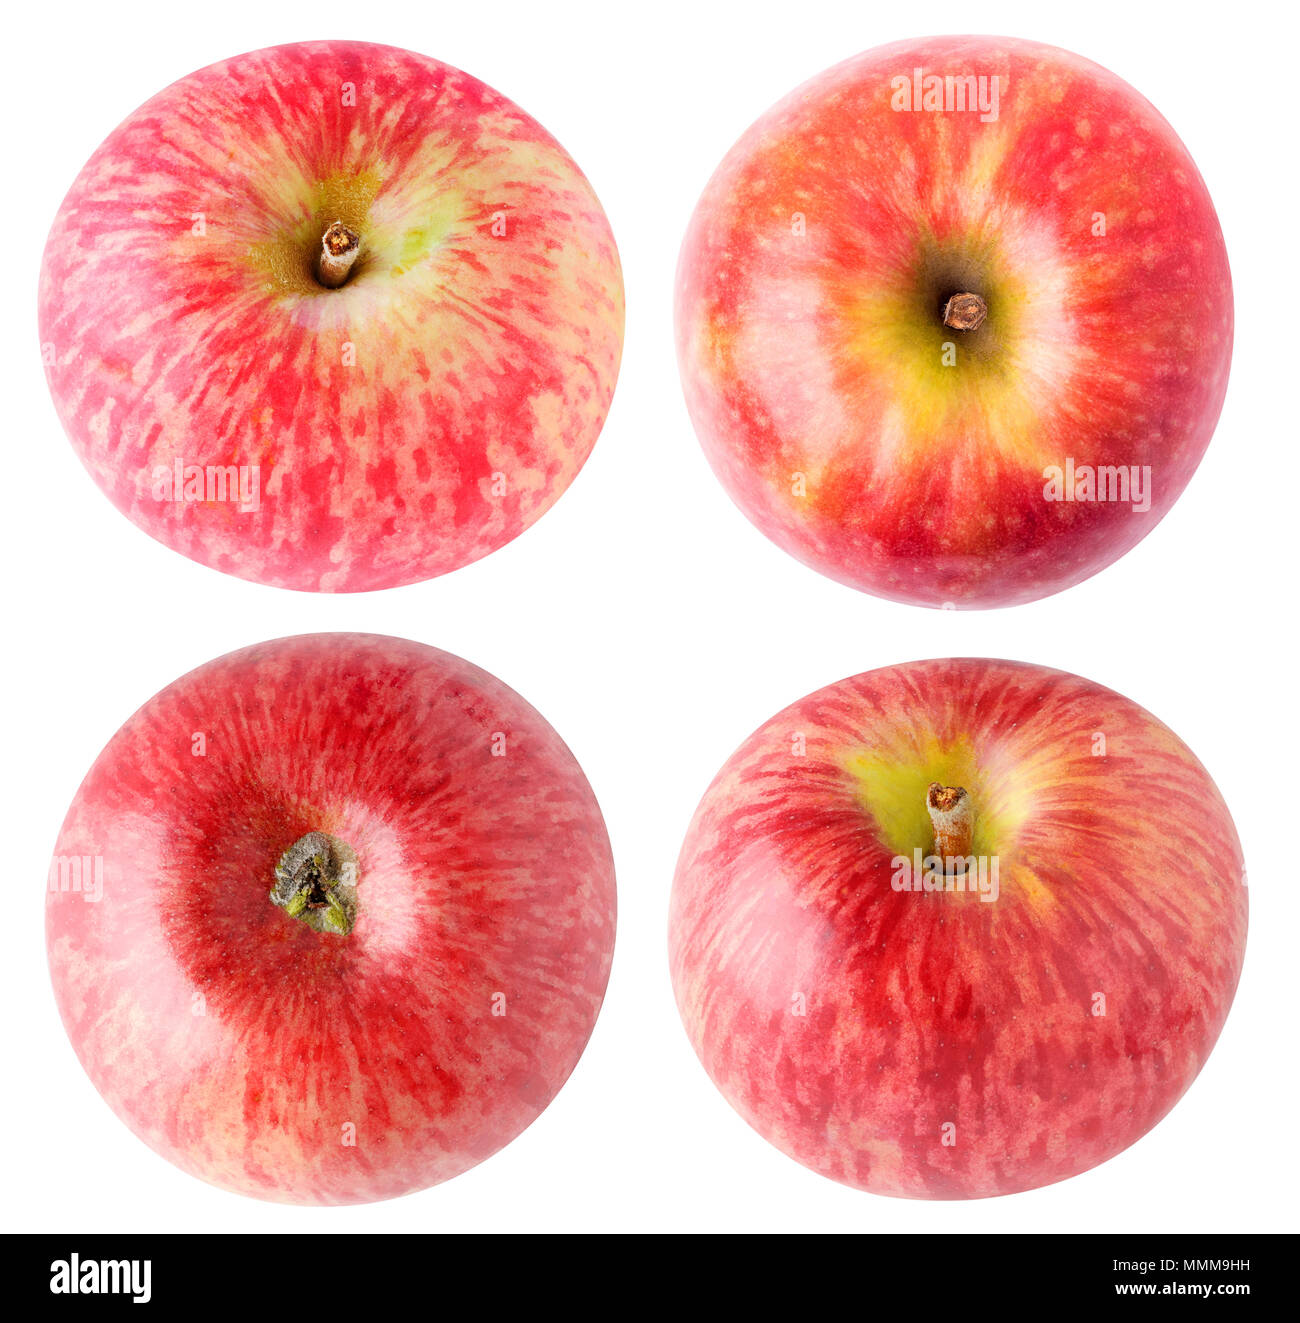 Isolated apples. Collection of red apples, top and bottom view, isolated on white background with clipping path - Stock Image